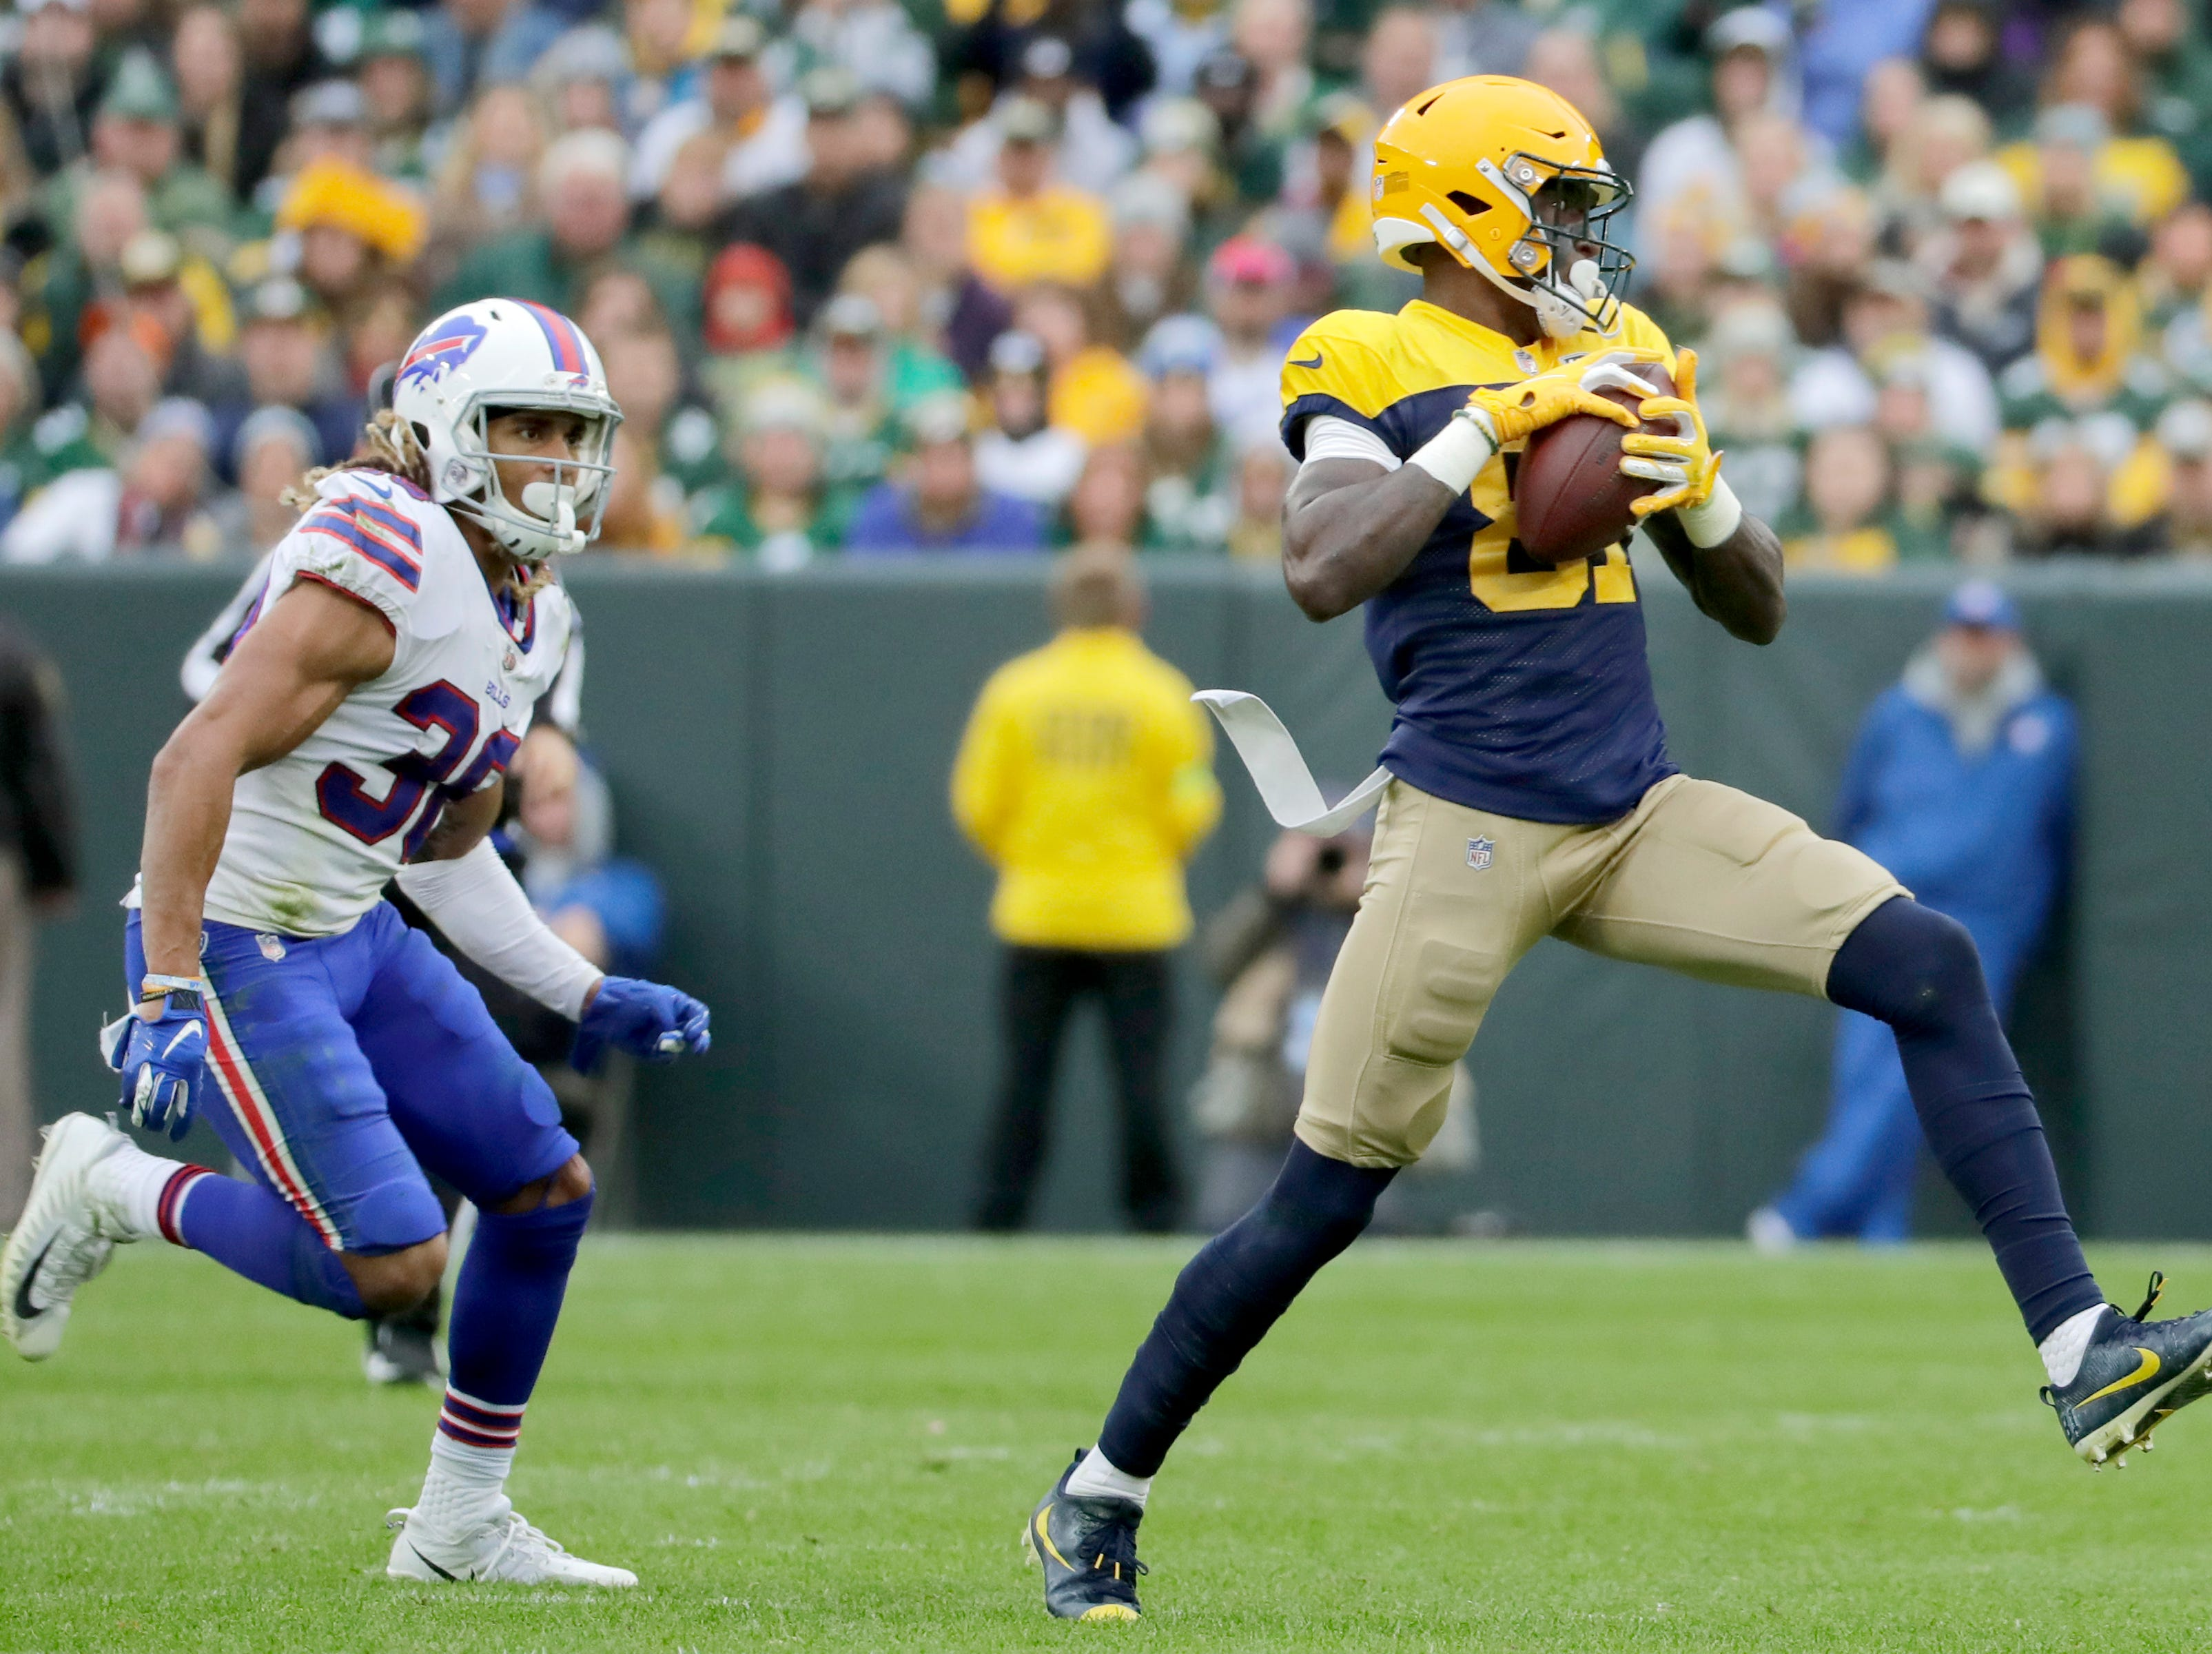 Green Bay Packers wide receiver Geronimo Allison catches a p second half passm against the Buffalo Bills on Sunday, September 30, 2018, at Lambeau Field in Green Bay, Wis. Wm. Glasheen/USA TODAY NETWORK-Wisconsin.